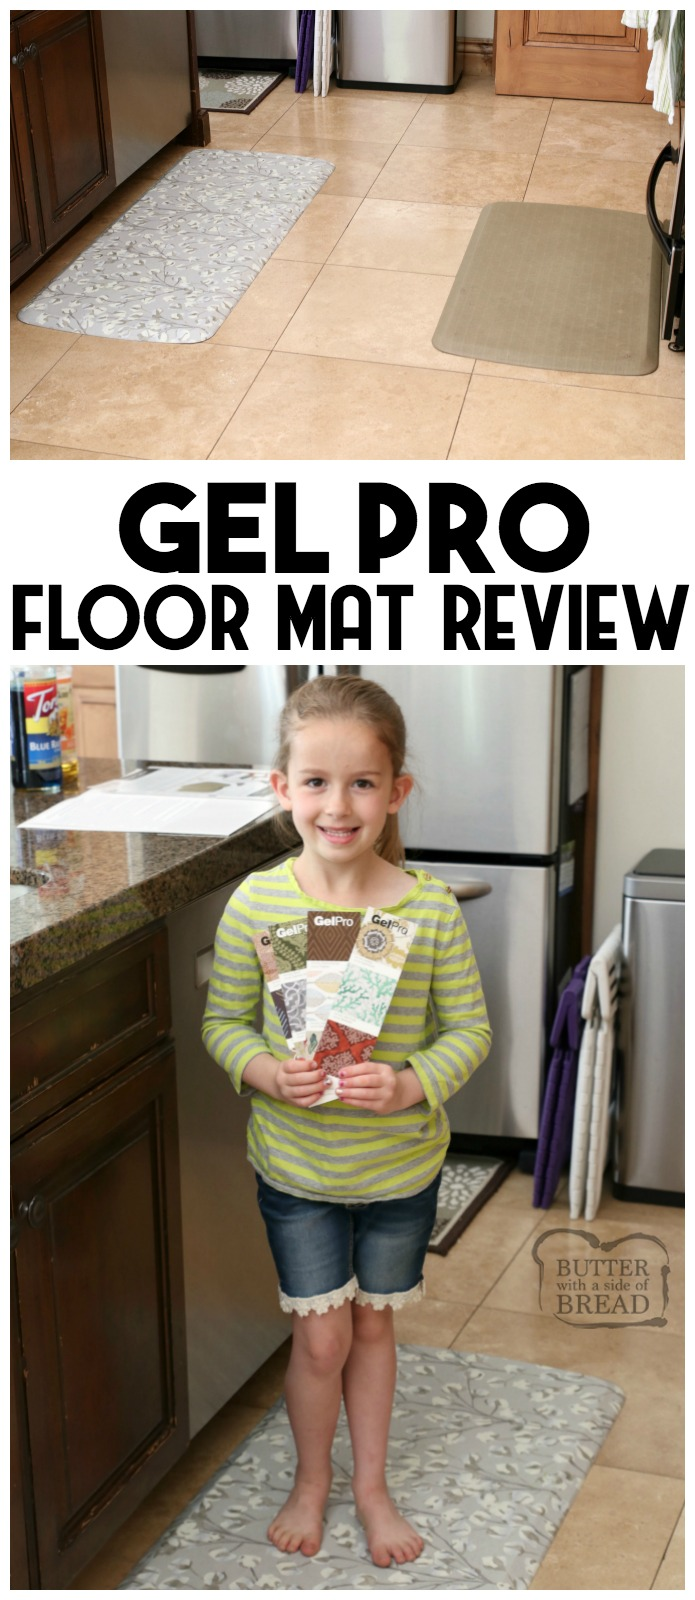 Honest GelPro Elite Floor Mat review, from a busy mom of 5. Why GelPro floor mats are the only and last floor mats you'll ever buy! GelPro floor mats are insanely comfortable, stay-put, durable and so pretty!